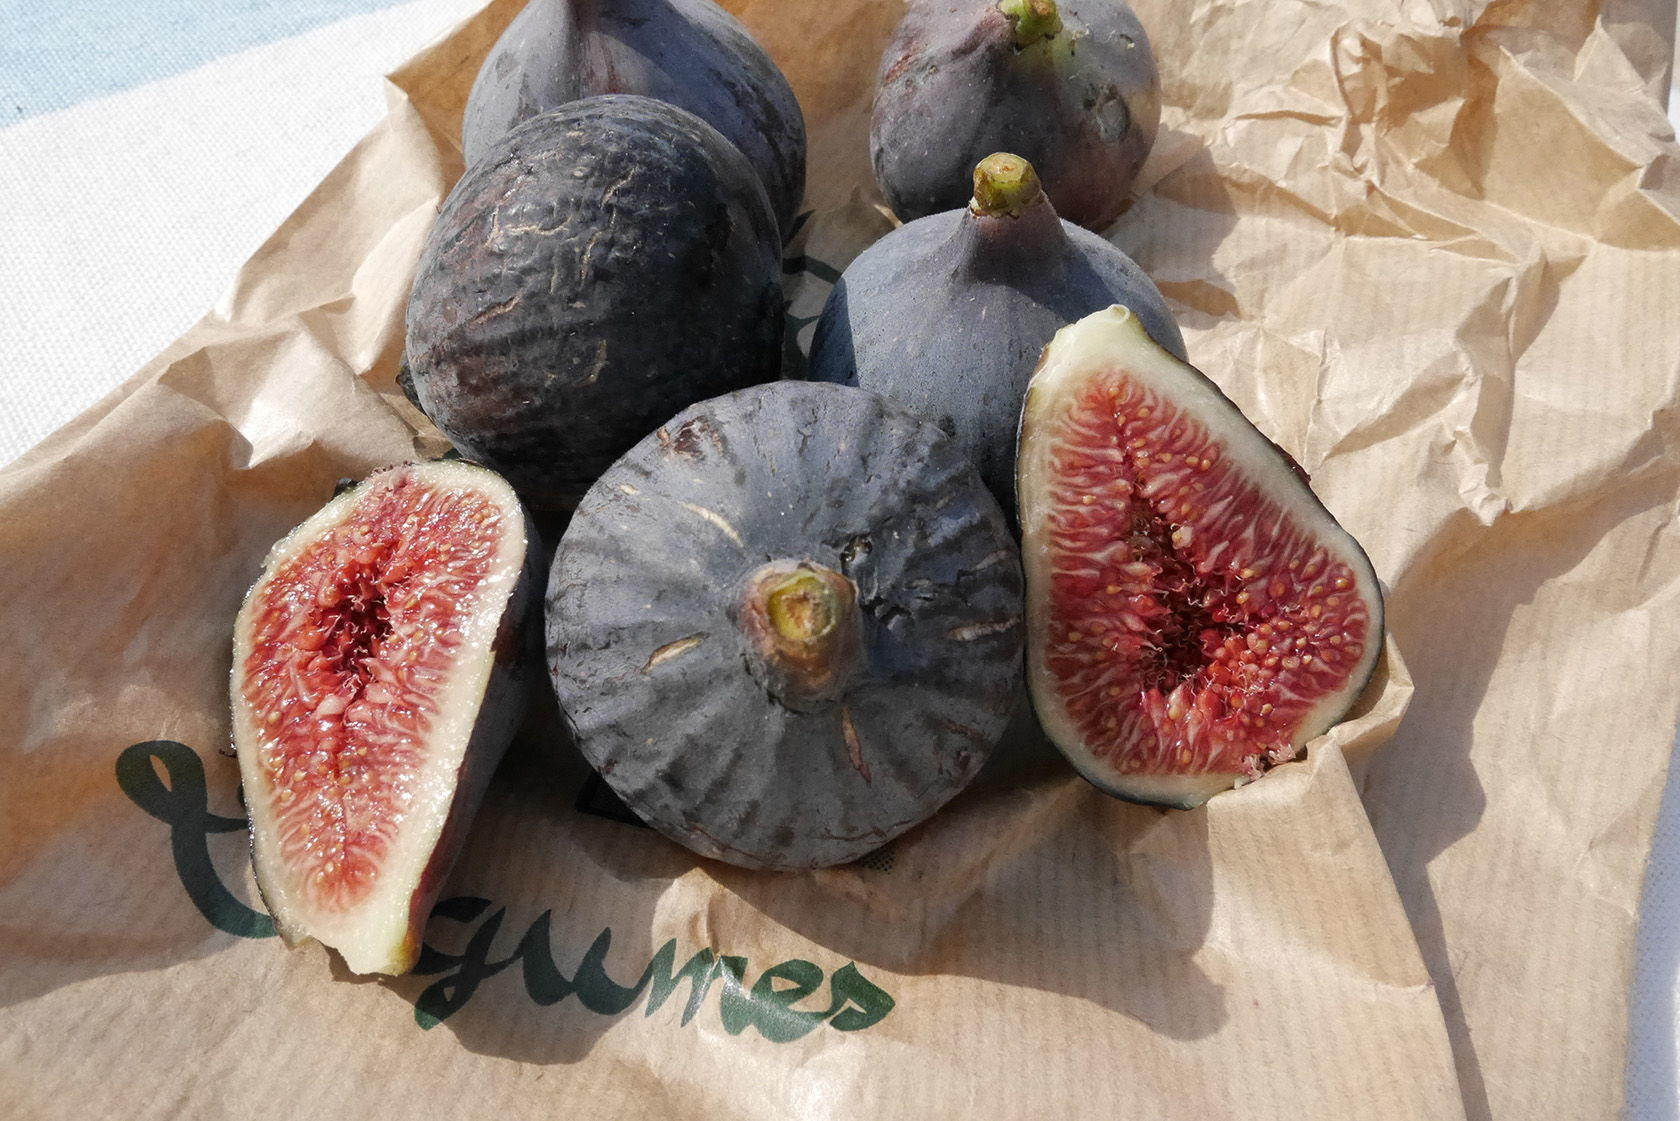 Fresh Figs Provence Lifestyle @Atableenprovence